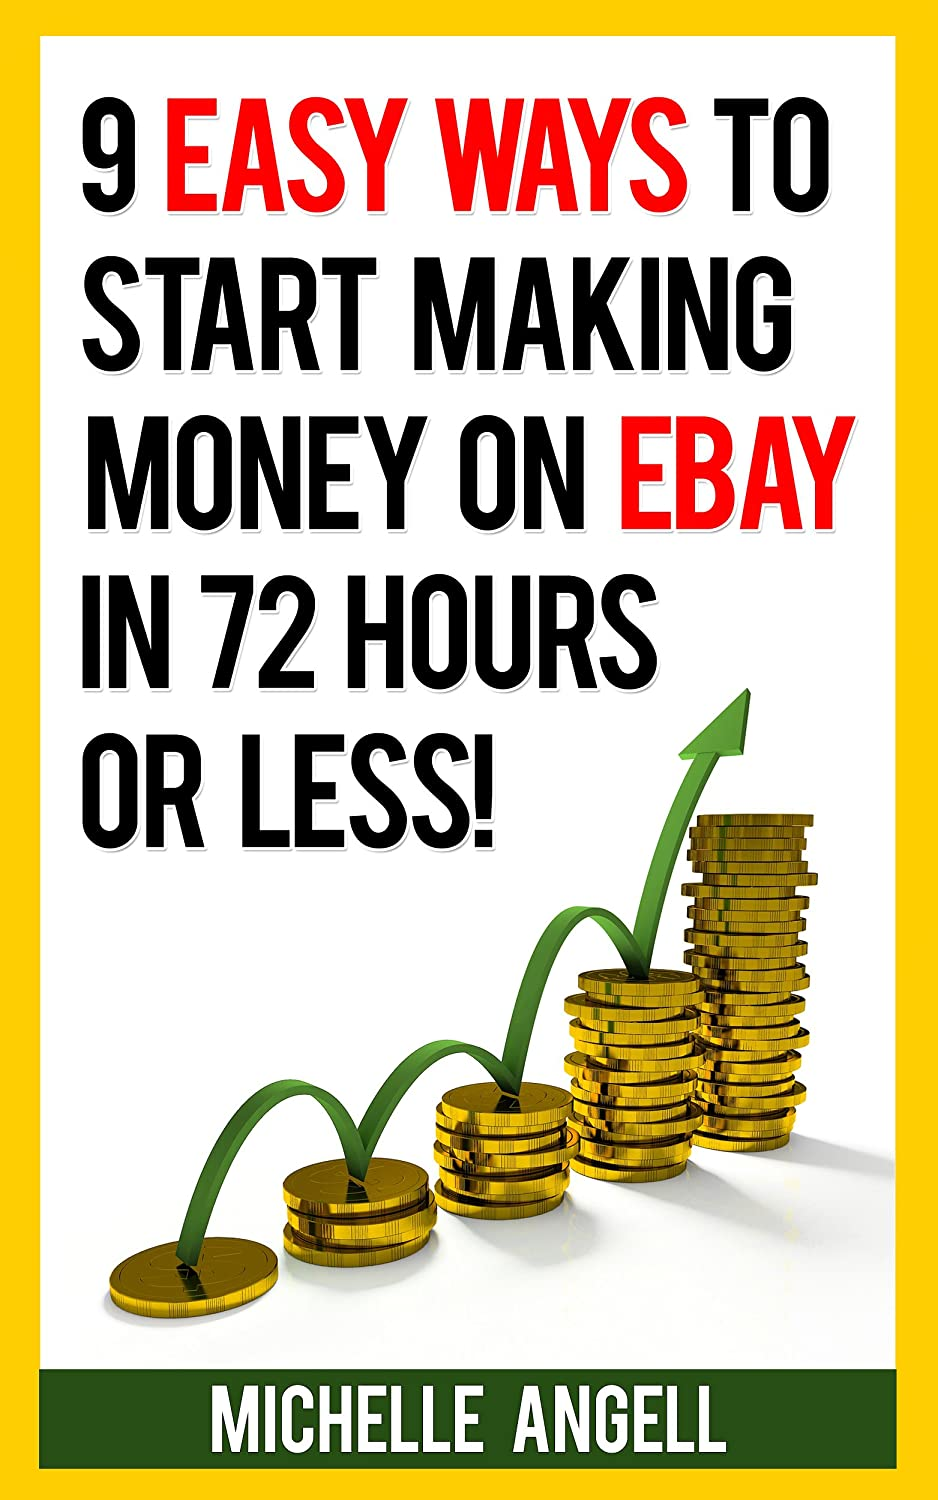 9 Easy Ways to Start Making Money on Ebay in 72 Hours or Less by Michelle Angell